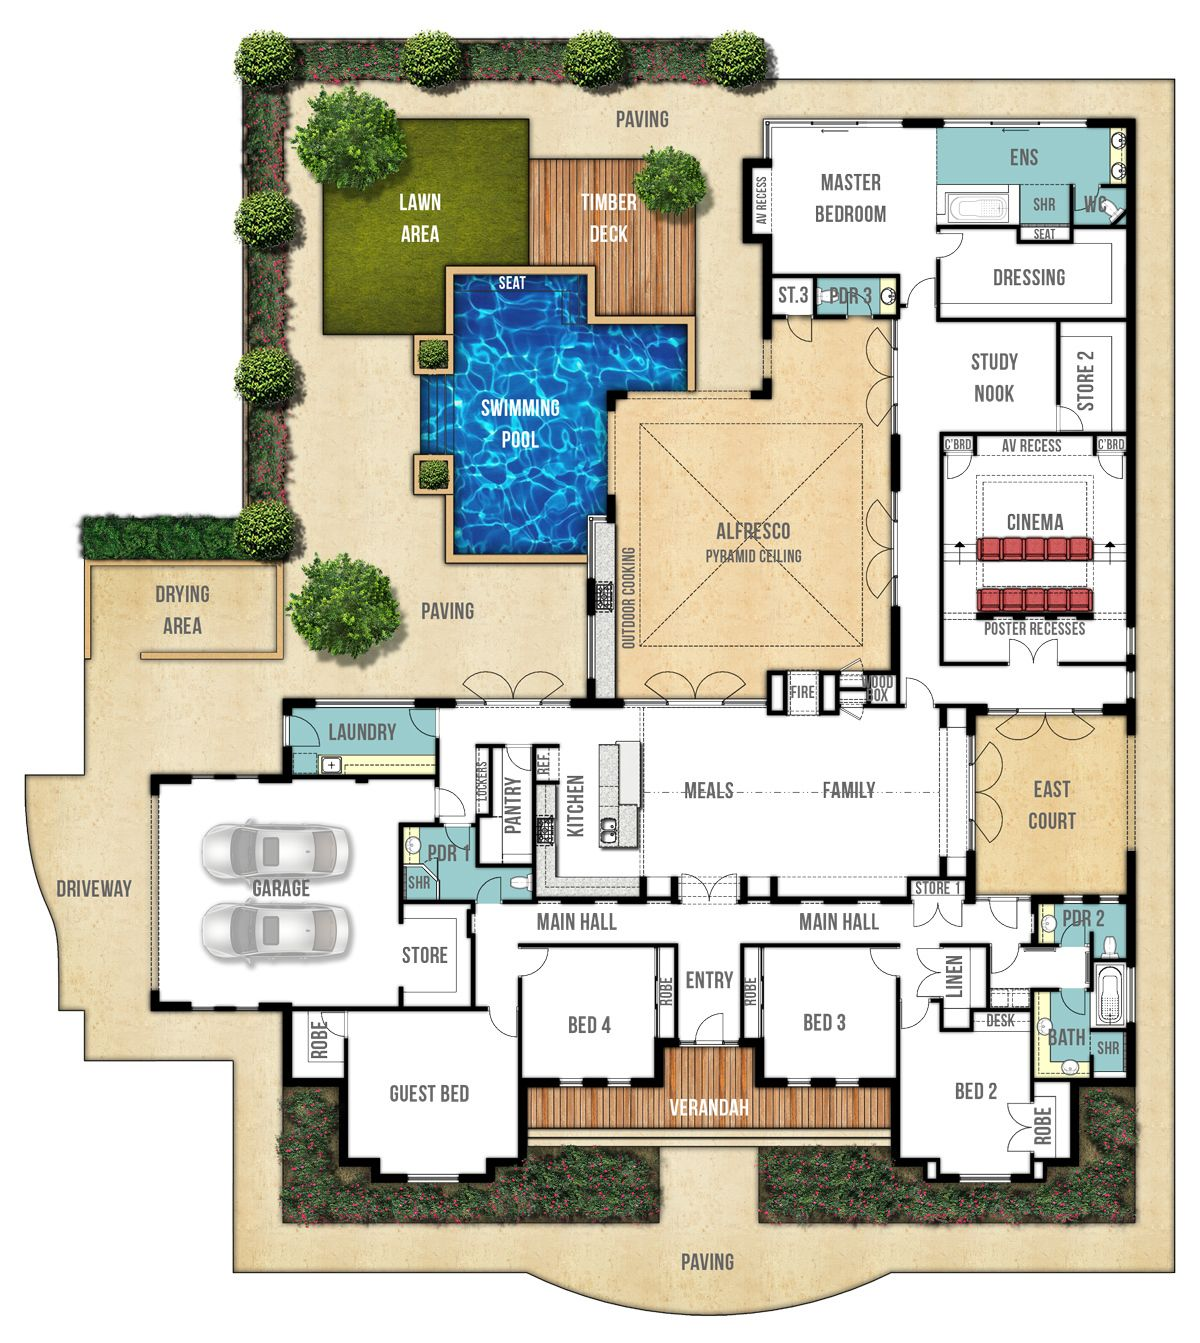 Single storey home design plan the farmhouse by boyd for Customize floor plans